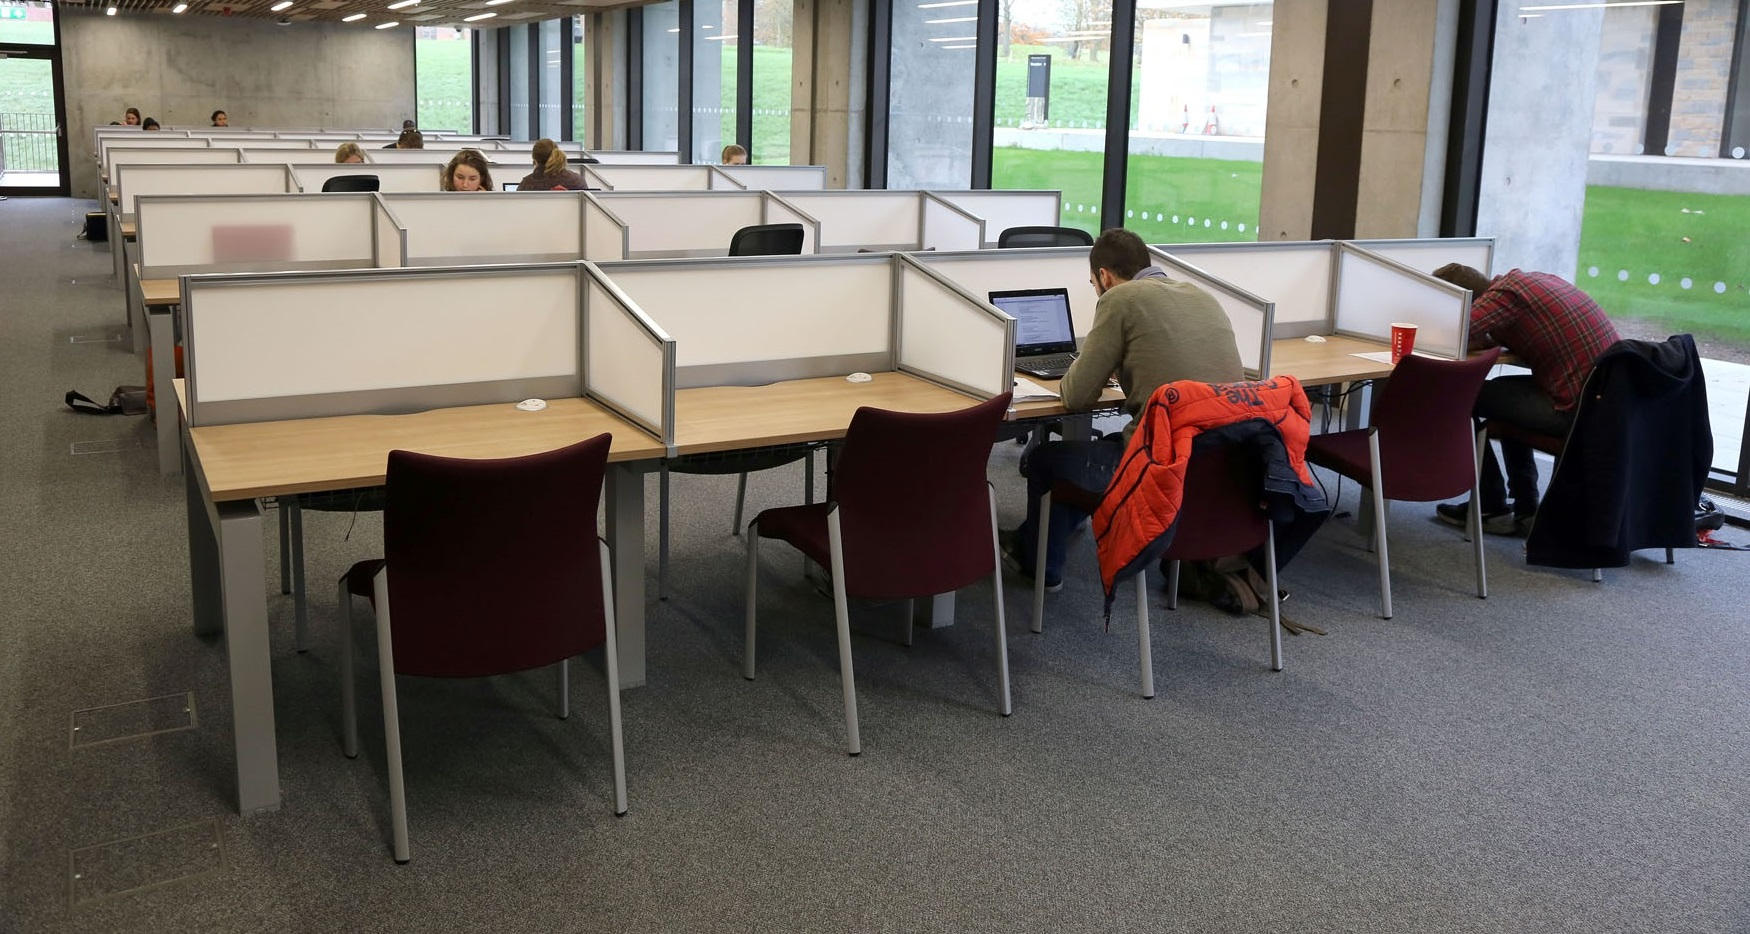 Students working in an open plan study space